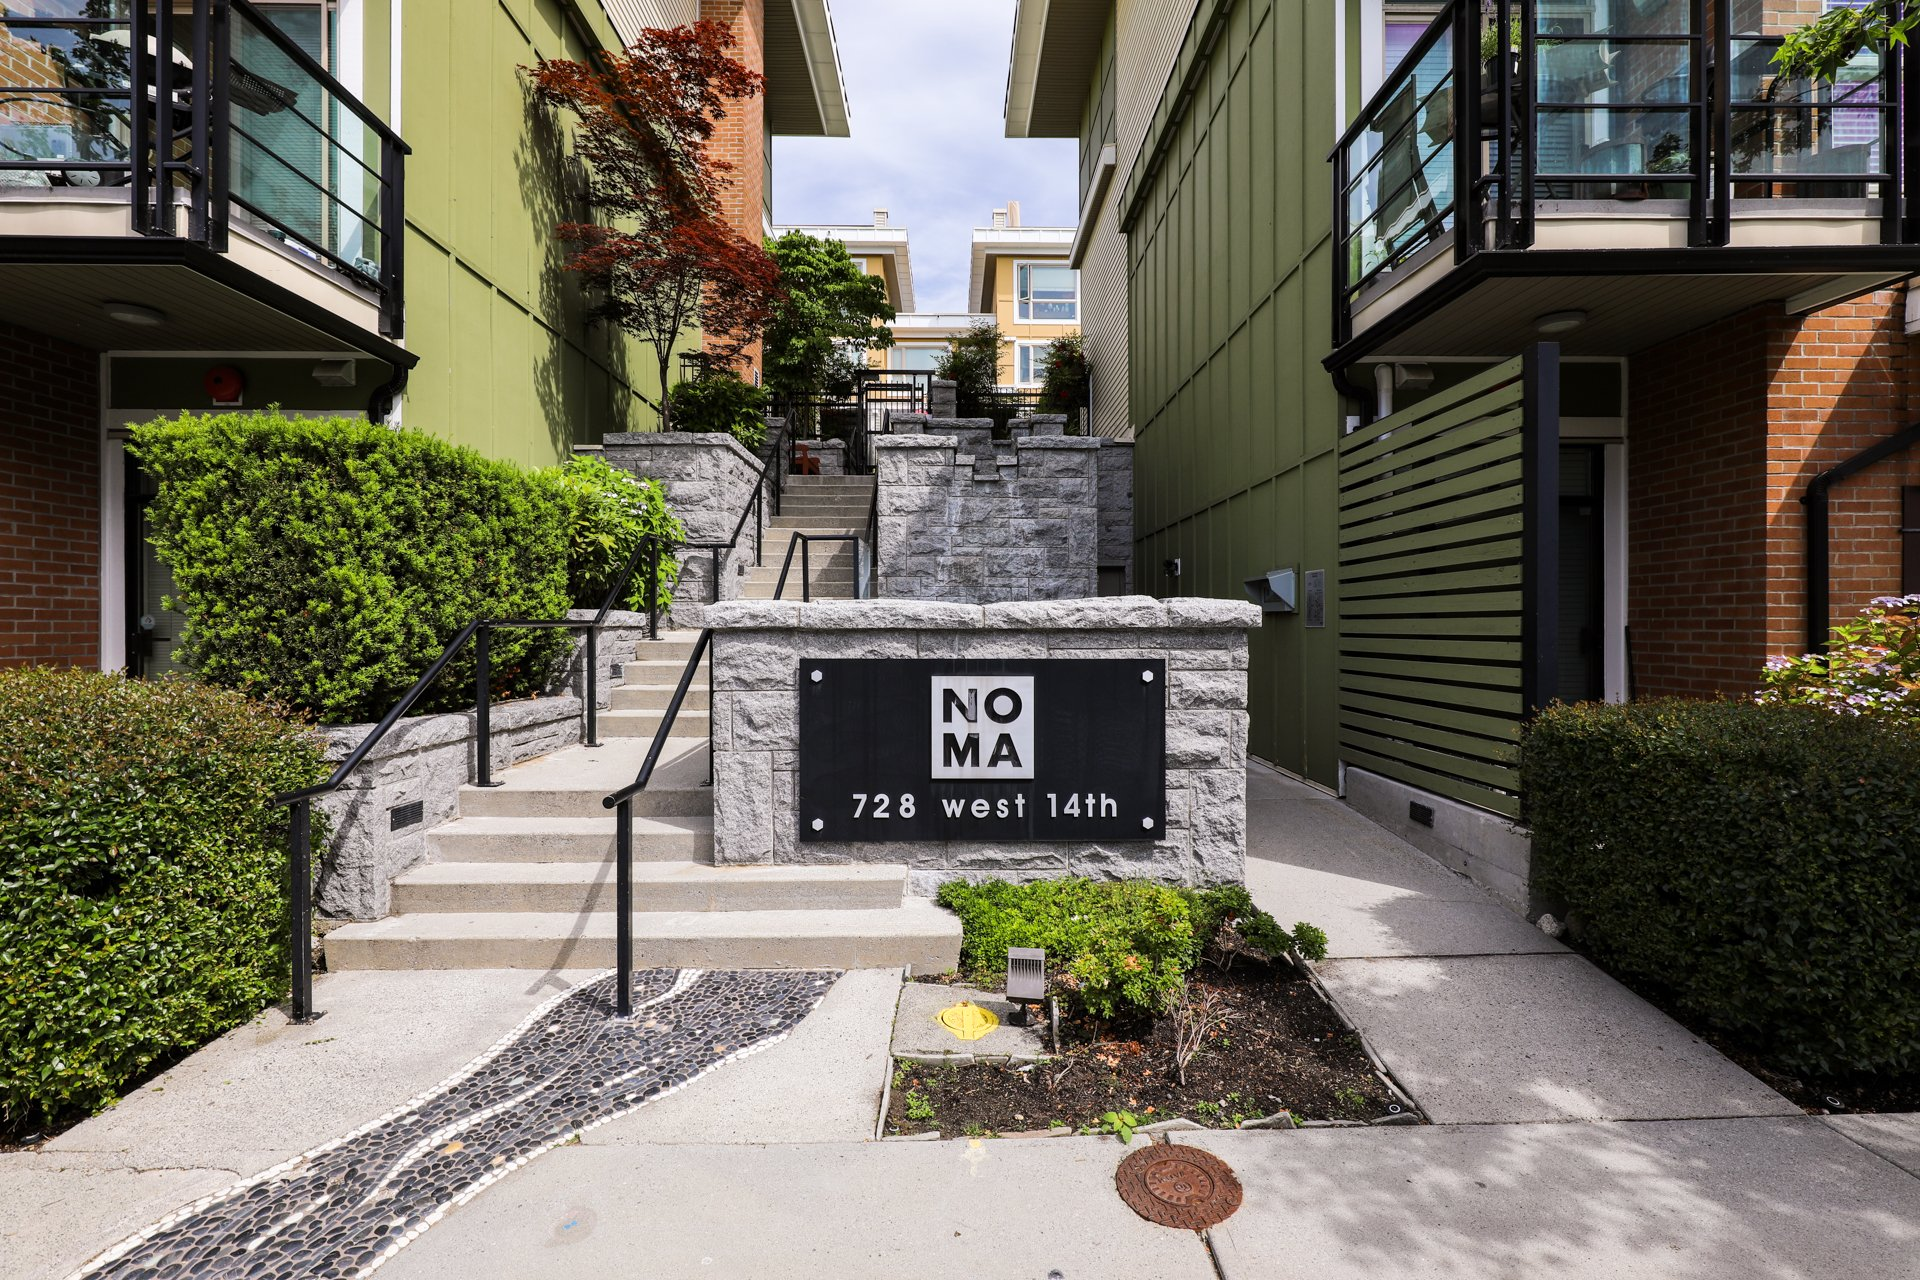 Noma - 728 W 14th St | Condos For Sale + New Listing Alerts